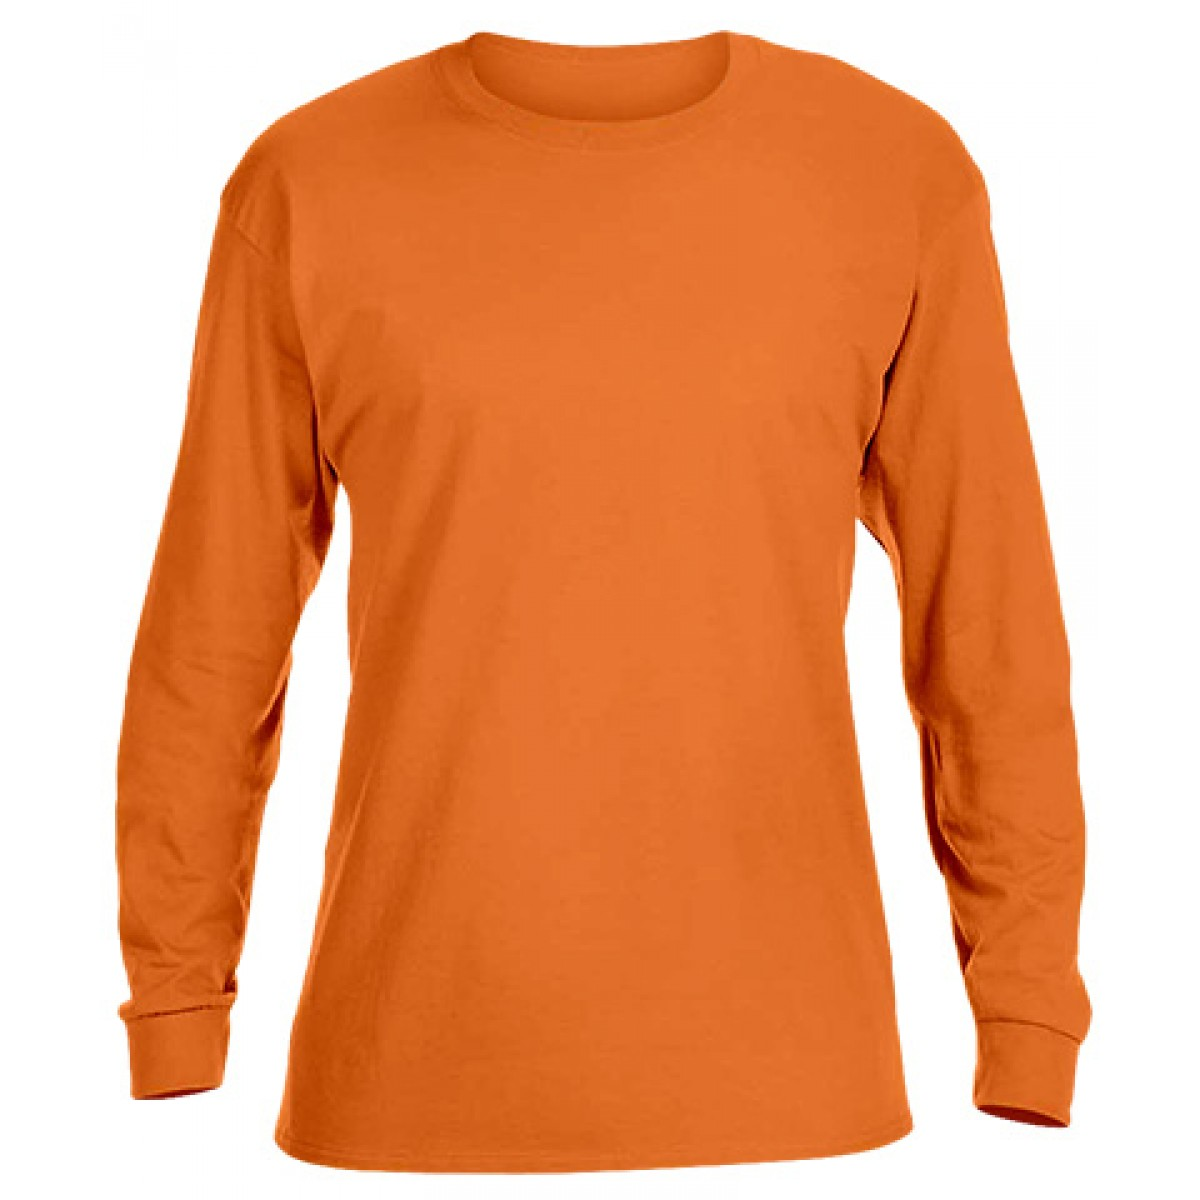 Basic Long Sleeve Crew Neck -Orange-3XL